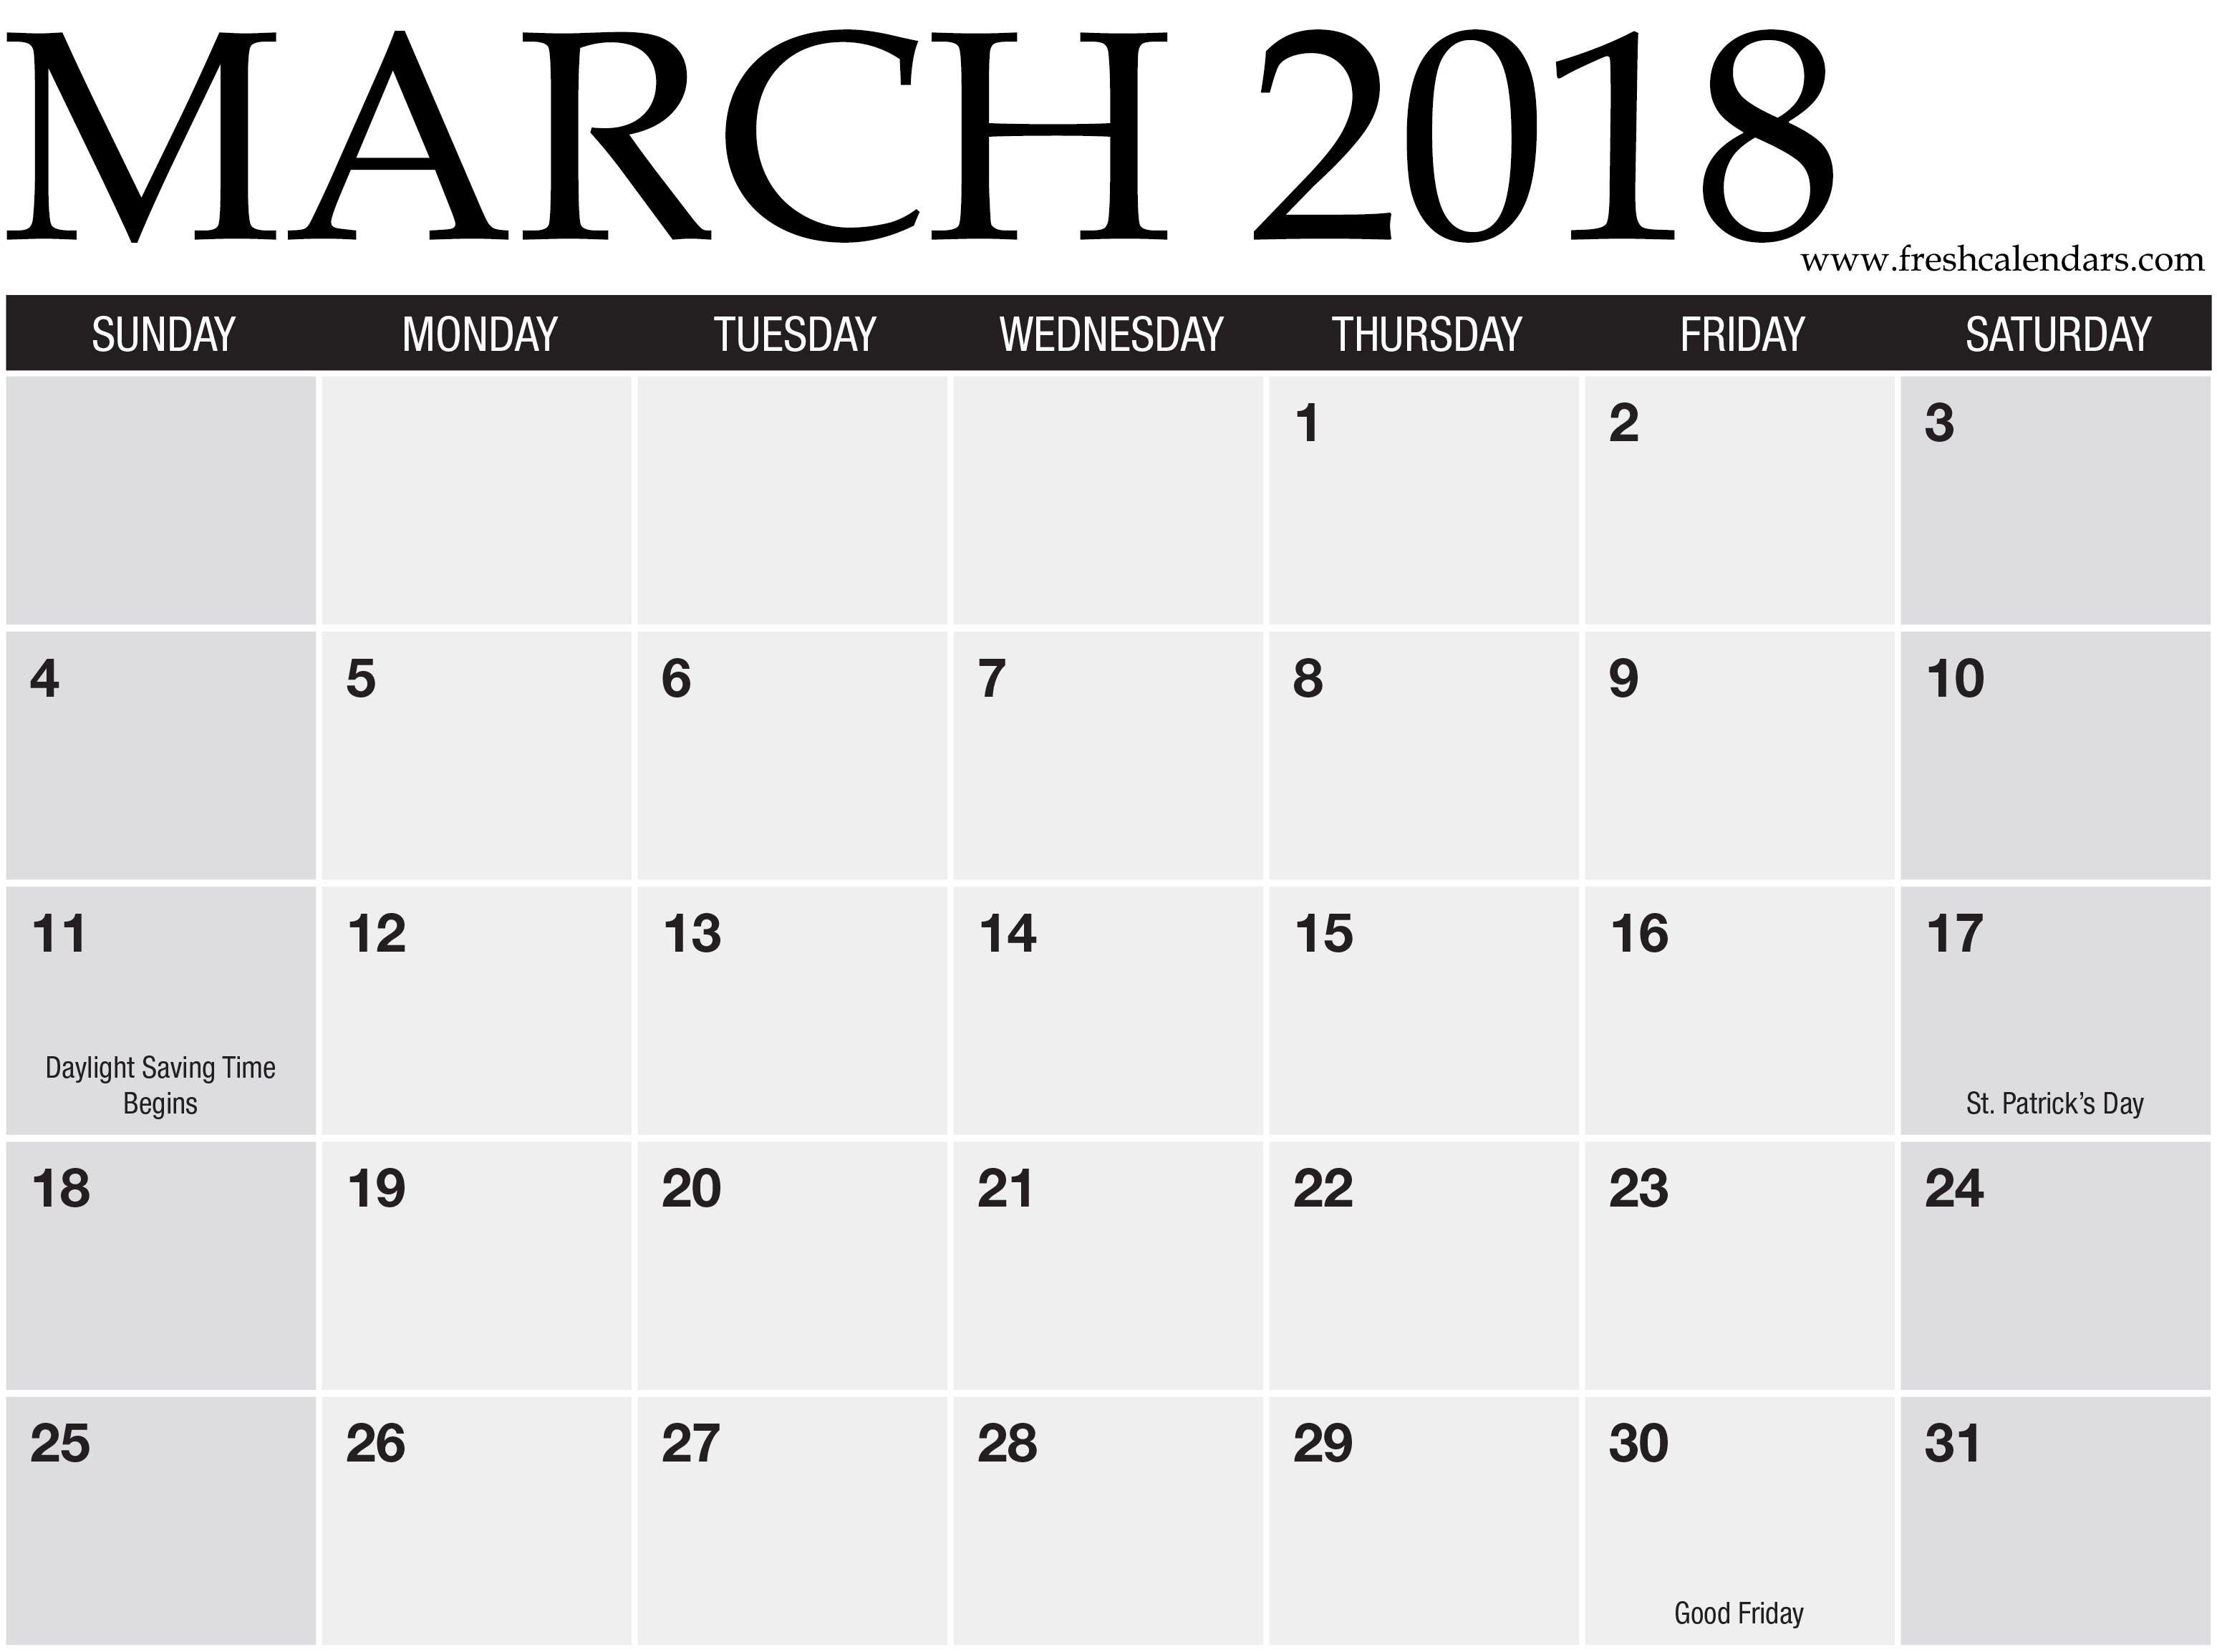 March Weekly Calendar Template Más Reciente March 2018 Printable Calendars Fresh Calendars Of March Weekly Calendar Template Más Caliente Printable March 2018 Calendar Monthly Planner Flower Design A